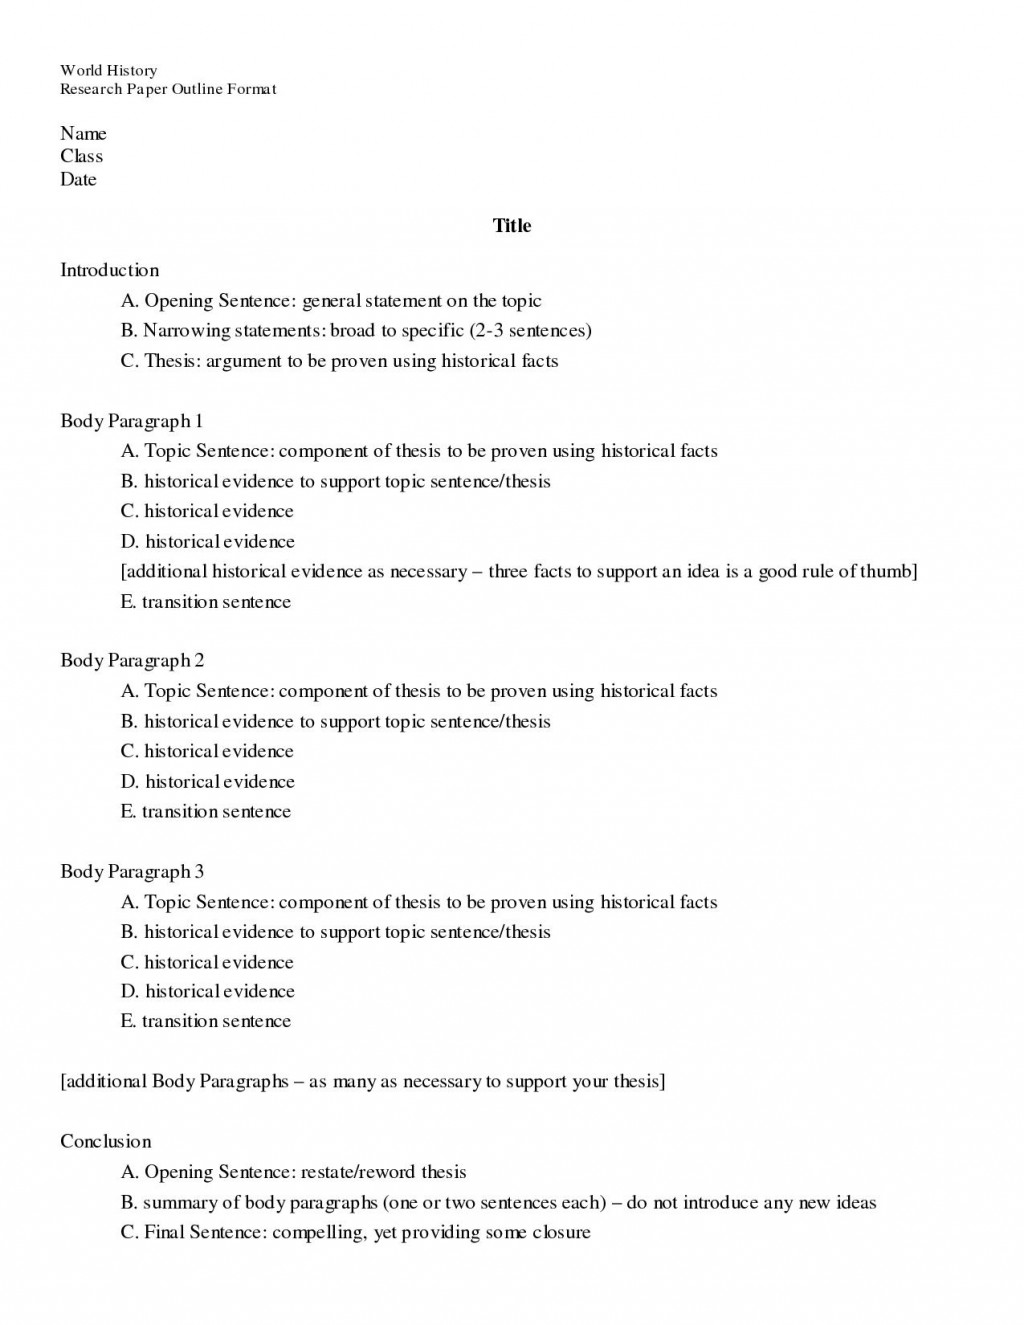 011 Research Paper Outline Of Introduction Surprising A Large